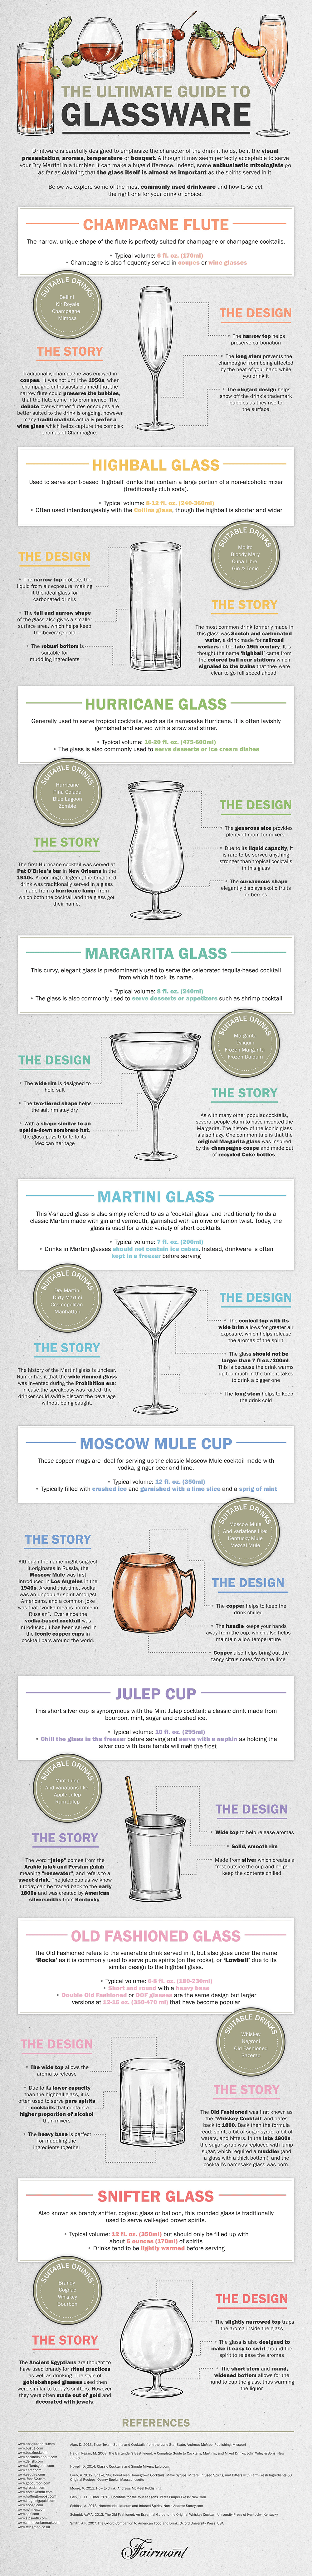 From champagne flutes to Martini glasses, here is everything you need to know about the most common cocktail glasses.